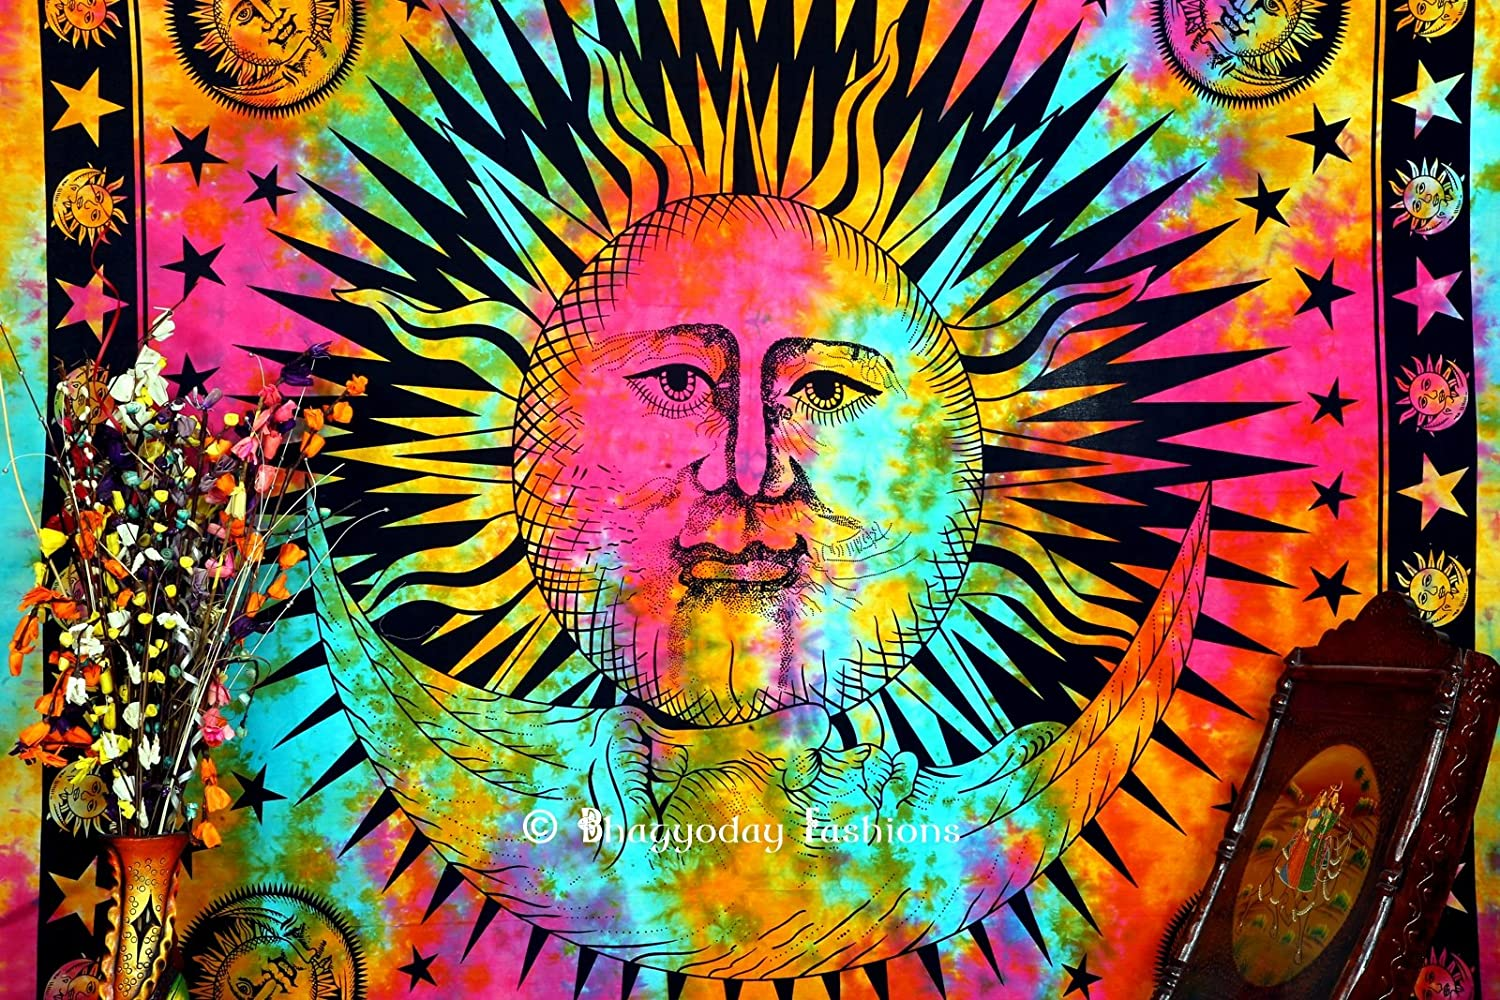 Indian Psychedelic Celestial Sun Moon Stars Tie Dye Tapestry, Good Morning Tapestry, Celestial Tapestry, Beach Throw, Bohemian Tapestries, Hippie Hippy Style, Gypsy Boho Wall Decor, Dorm Tapestry, Table Cloth, Picnic Blanket, 86x94 Inch. By Bhagyoday